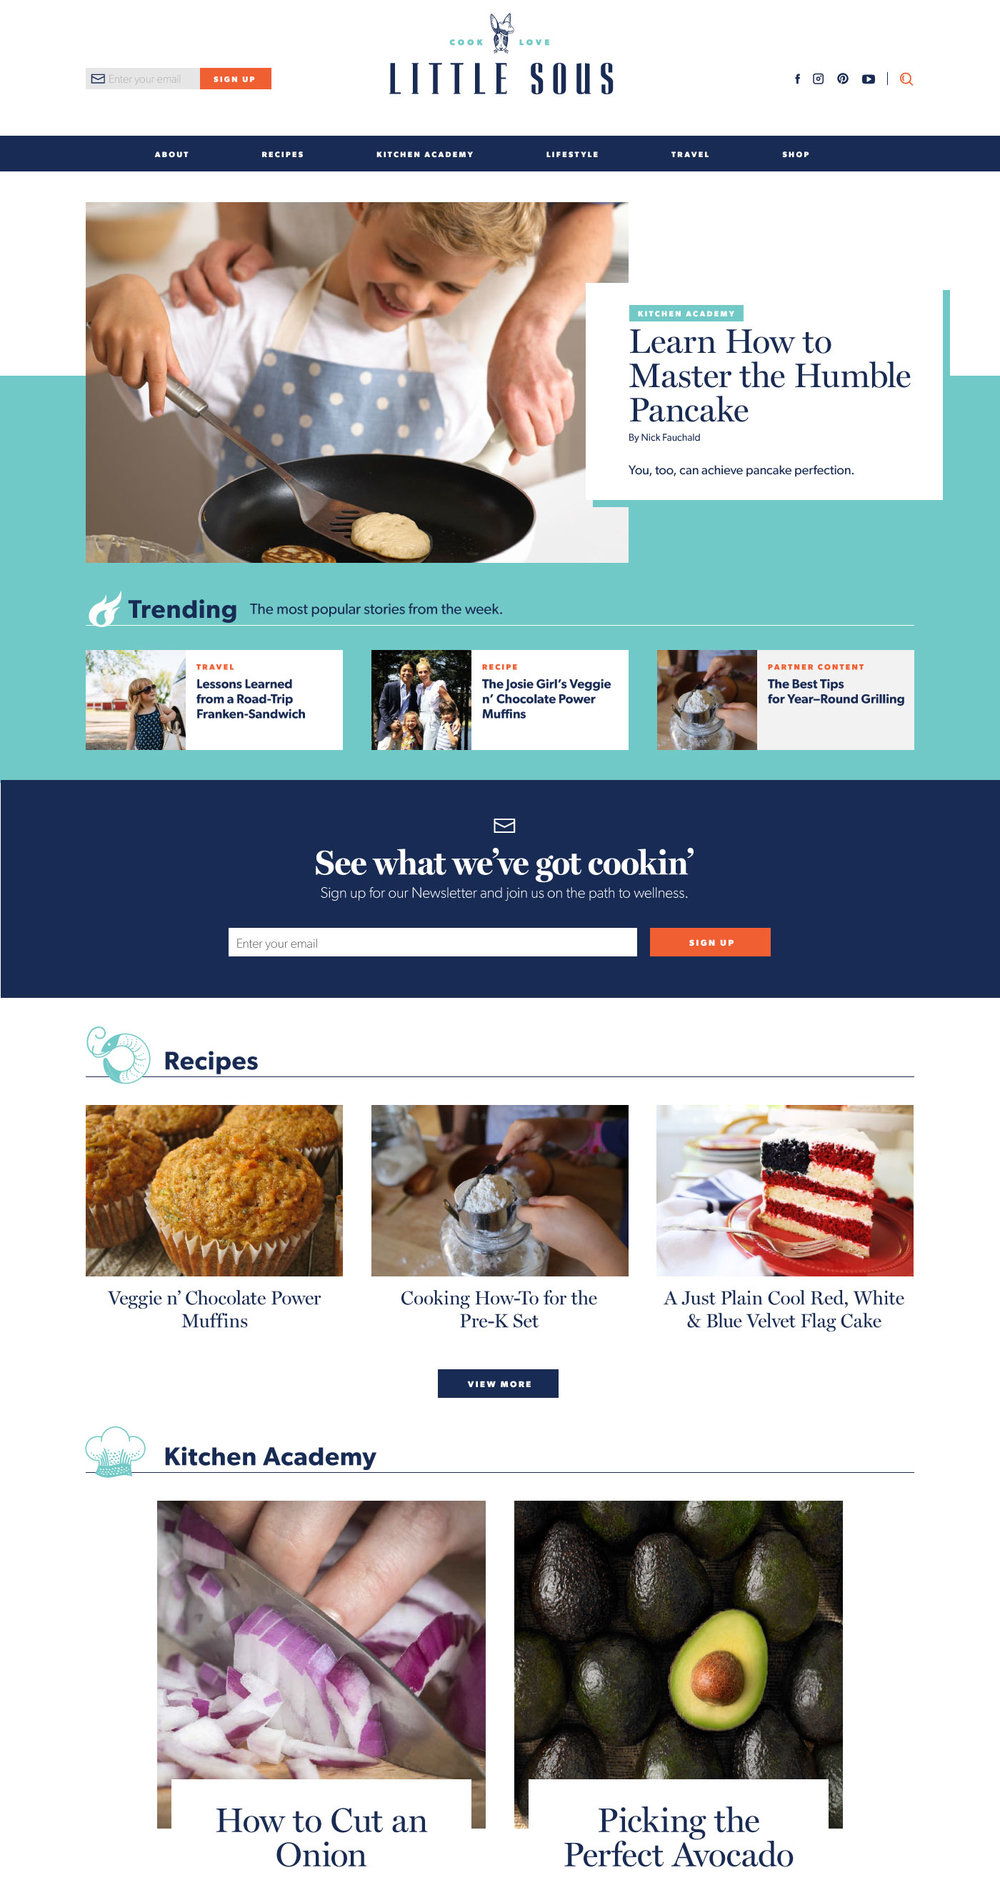 Little SousBig Site - I was contacted soon after my first daughter was born by the publisher of Little Sous. She immediately impressed me with the mission of the site and her passion. I loved the idea that the kitchen could not just be a valuable space for kids to experiment, learn, and build confidence, but it's also a chance to create to memories and bond with your children. It was shocking that a site like this didn't already exist.I jumped at the opportunity to design and build the site from the ground up, from selecting the CMS to designing custom icons. I brought years of experience in digital publishing to this project and walked away feeling very proud of both the site and the content.